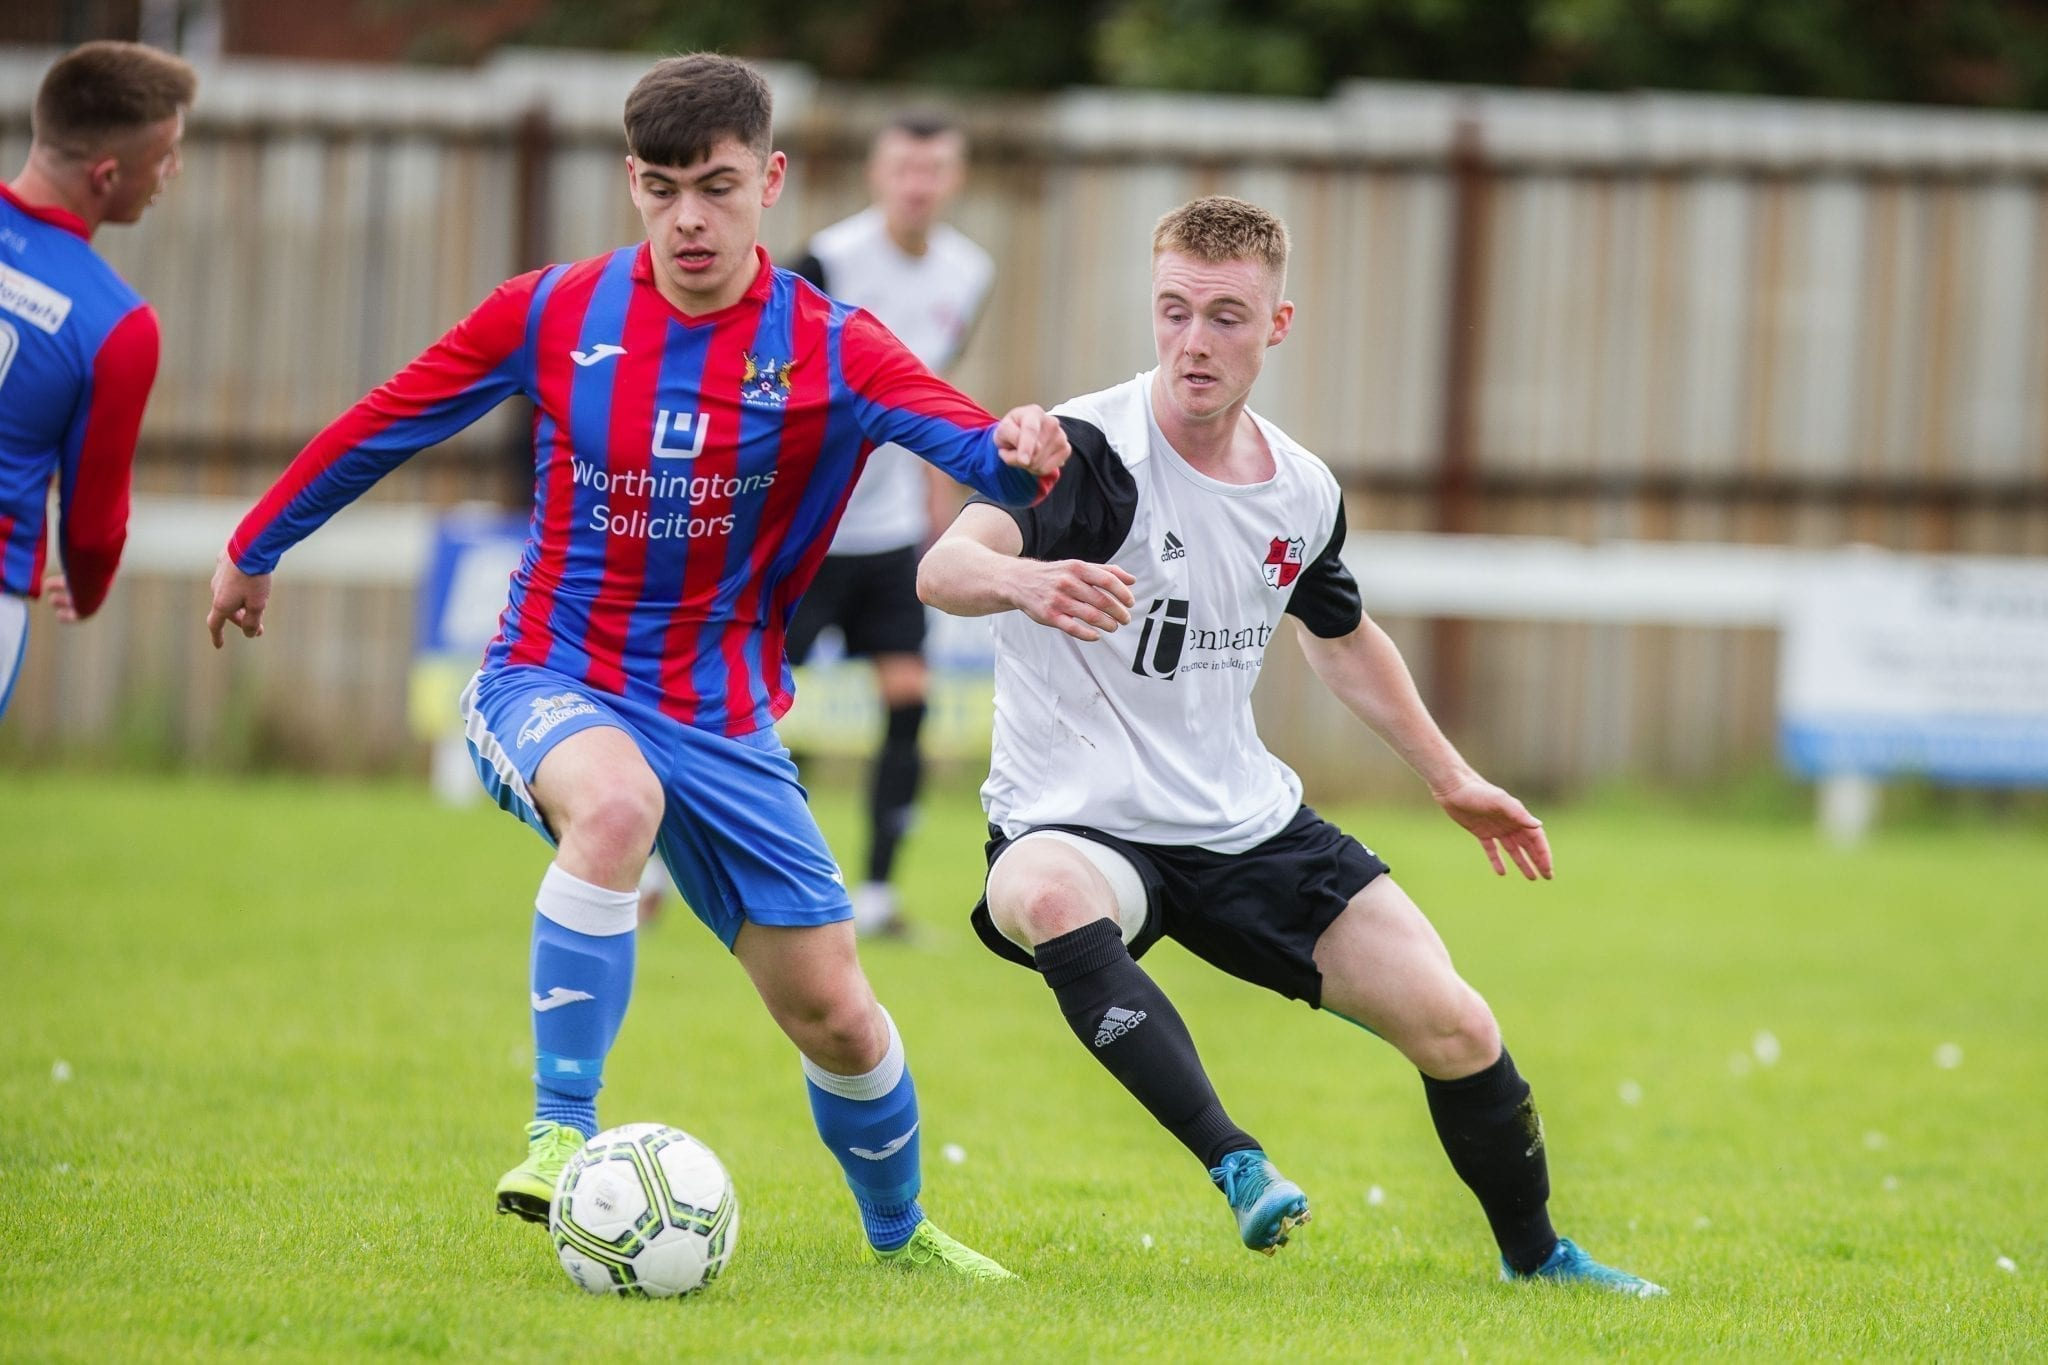 Amateurs beat Ards U20s in entertaining pre-season friendly